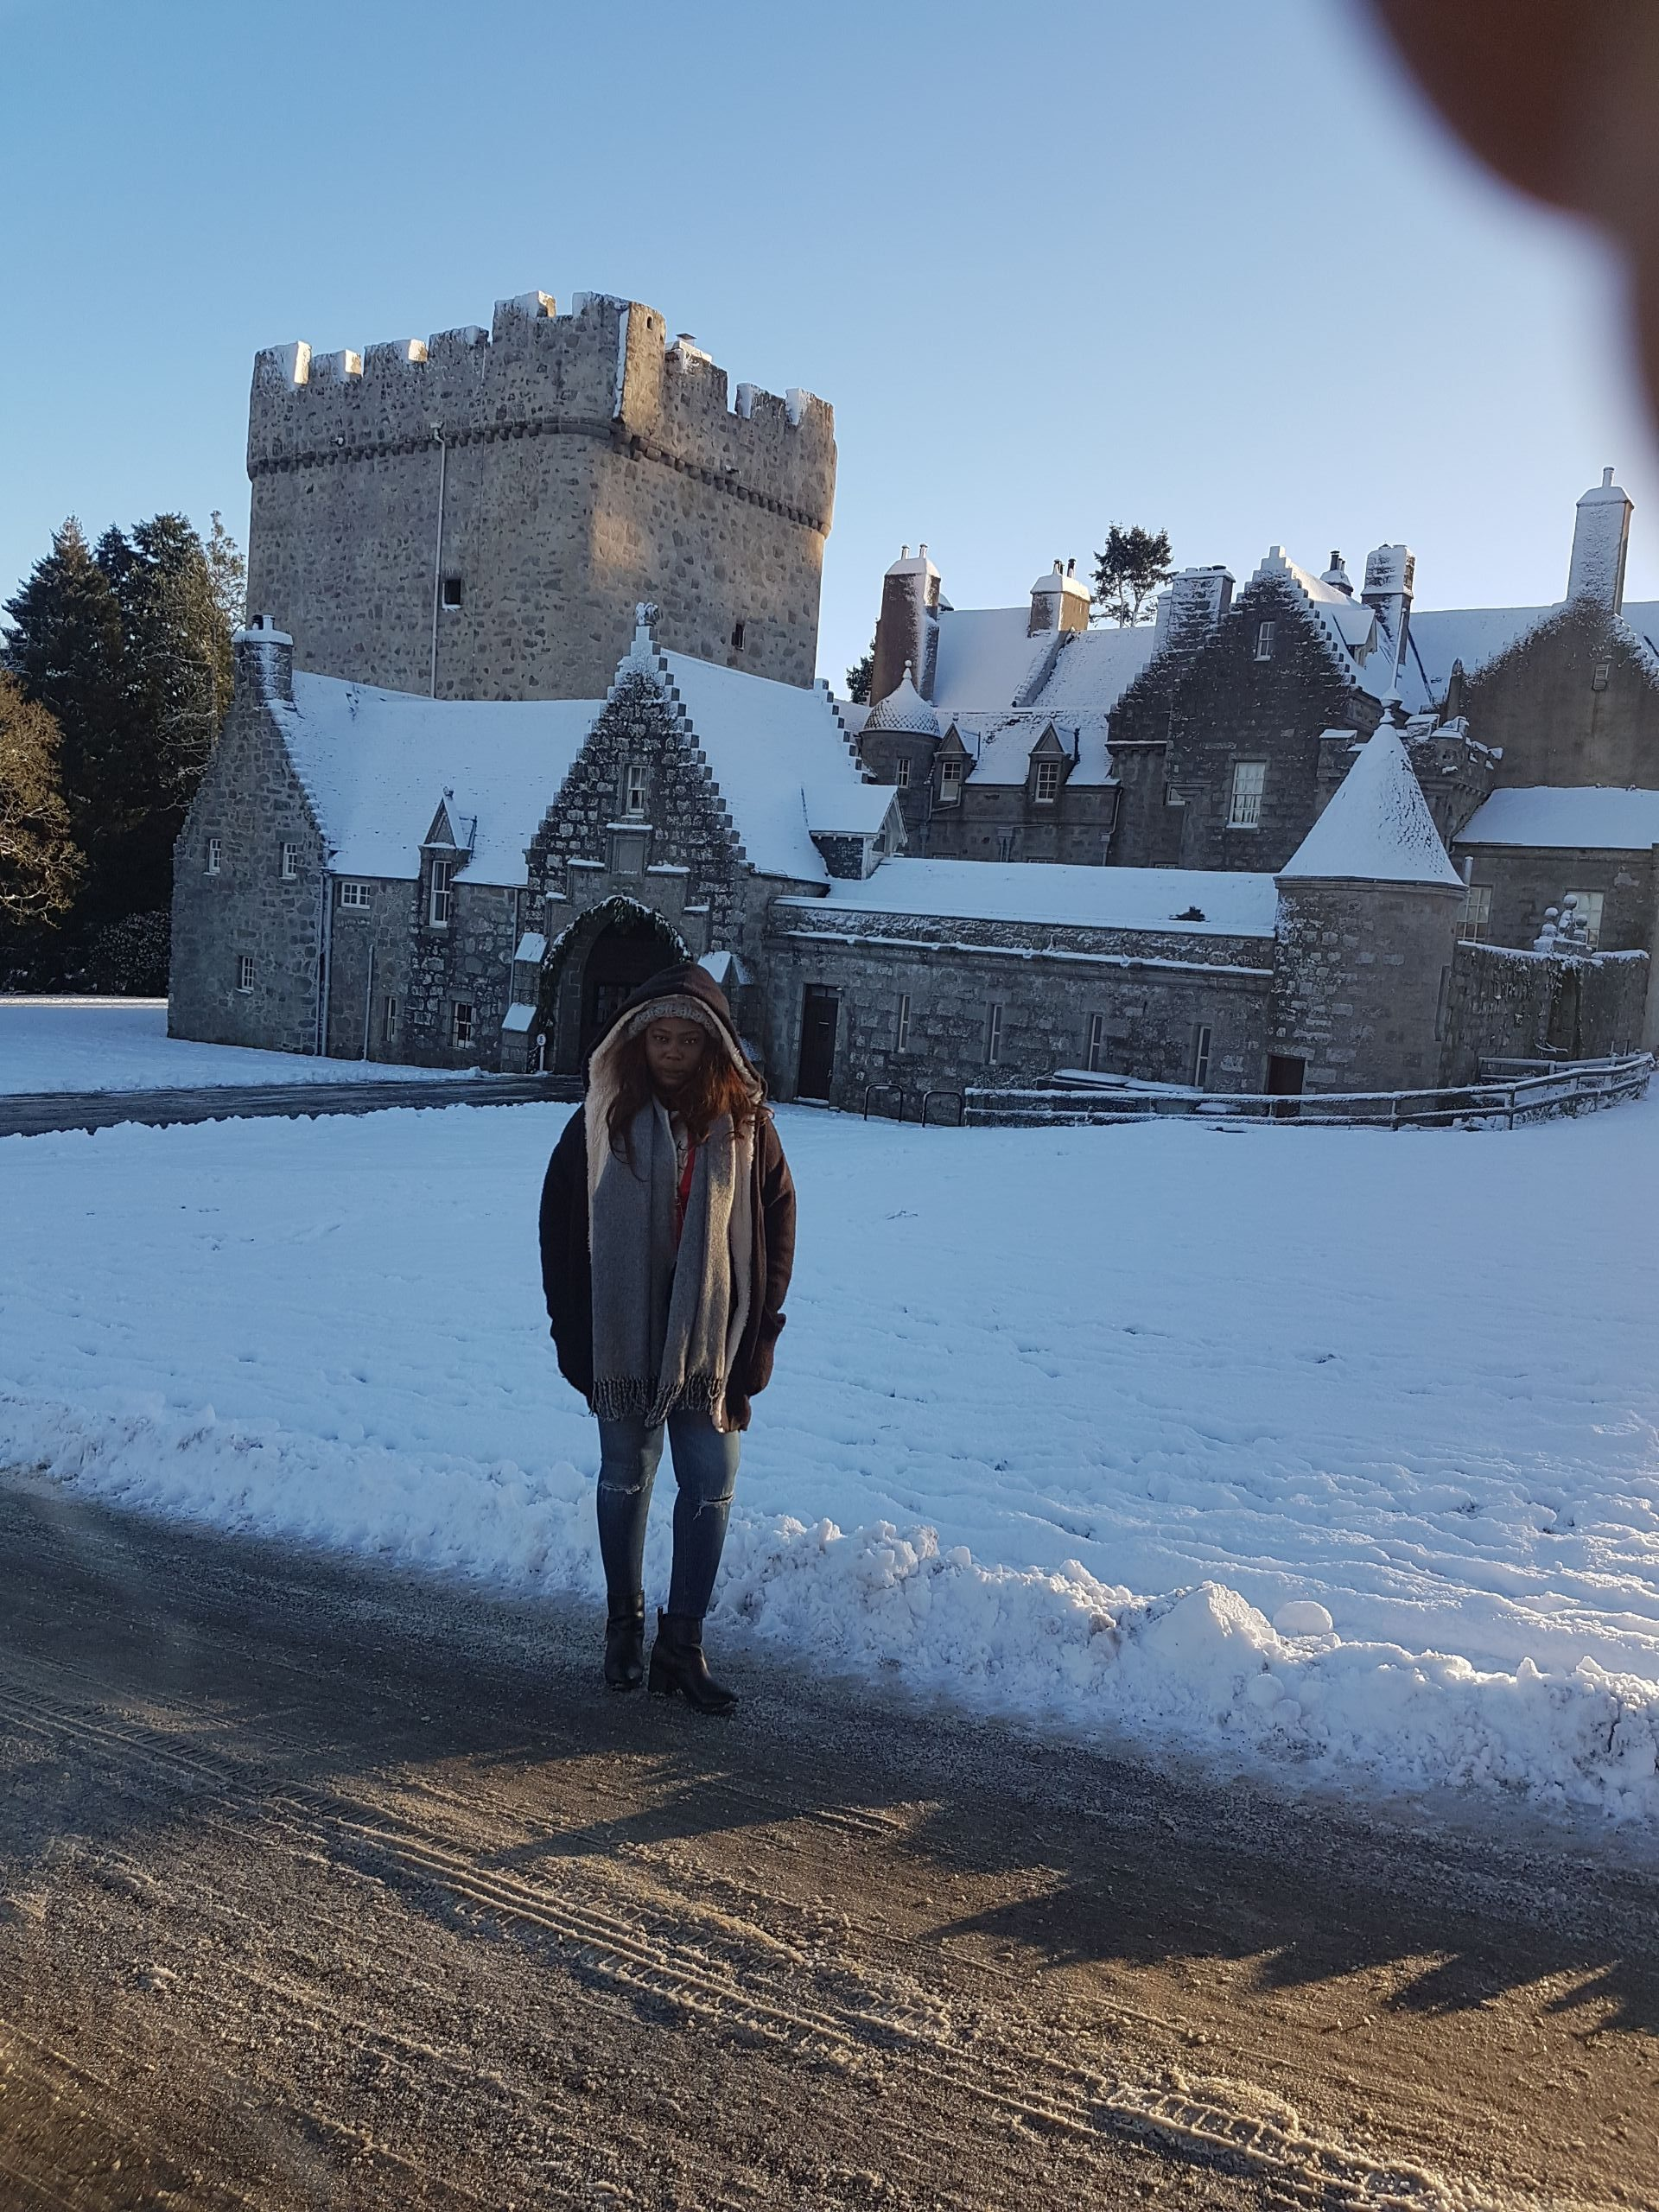 Lady in front of a castle